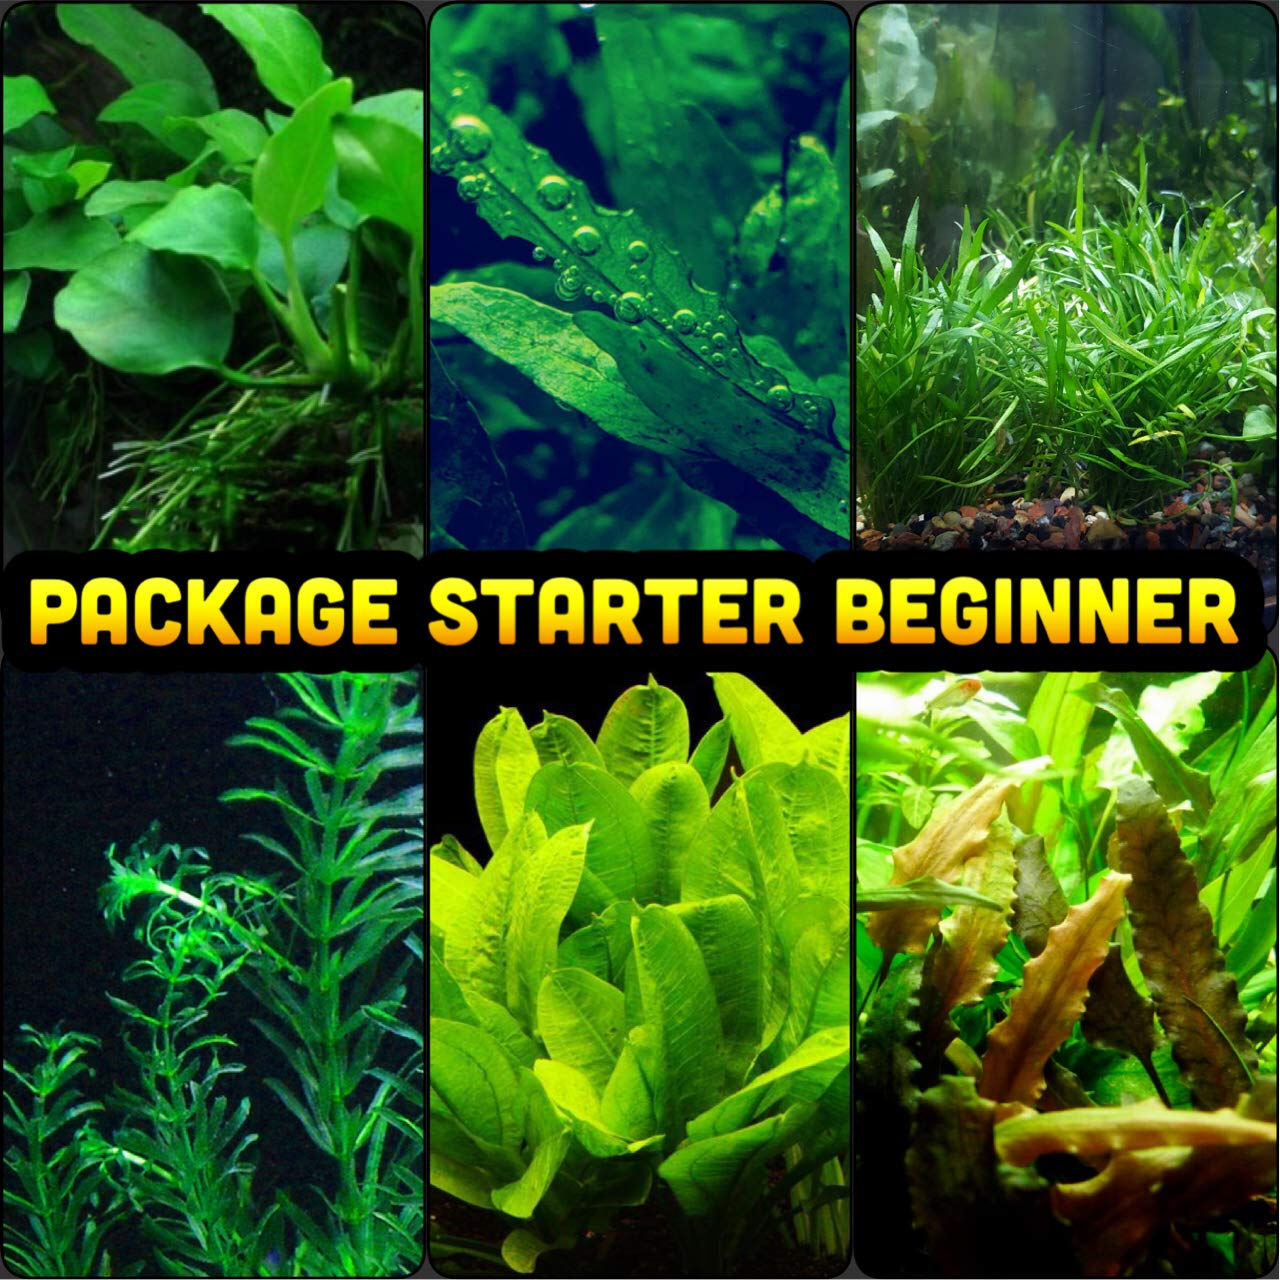 Mainam 30+ Stems Package Starter Beginner Set Live Aquarium Plants Micro Sword, Rosette Amazon Sword, Anubias, Java Fern and More by Mainam